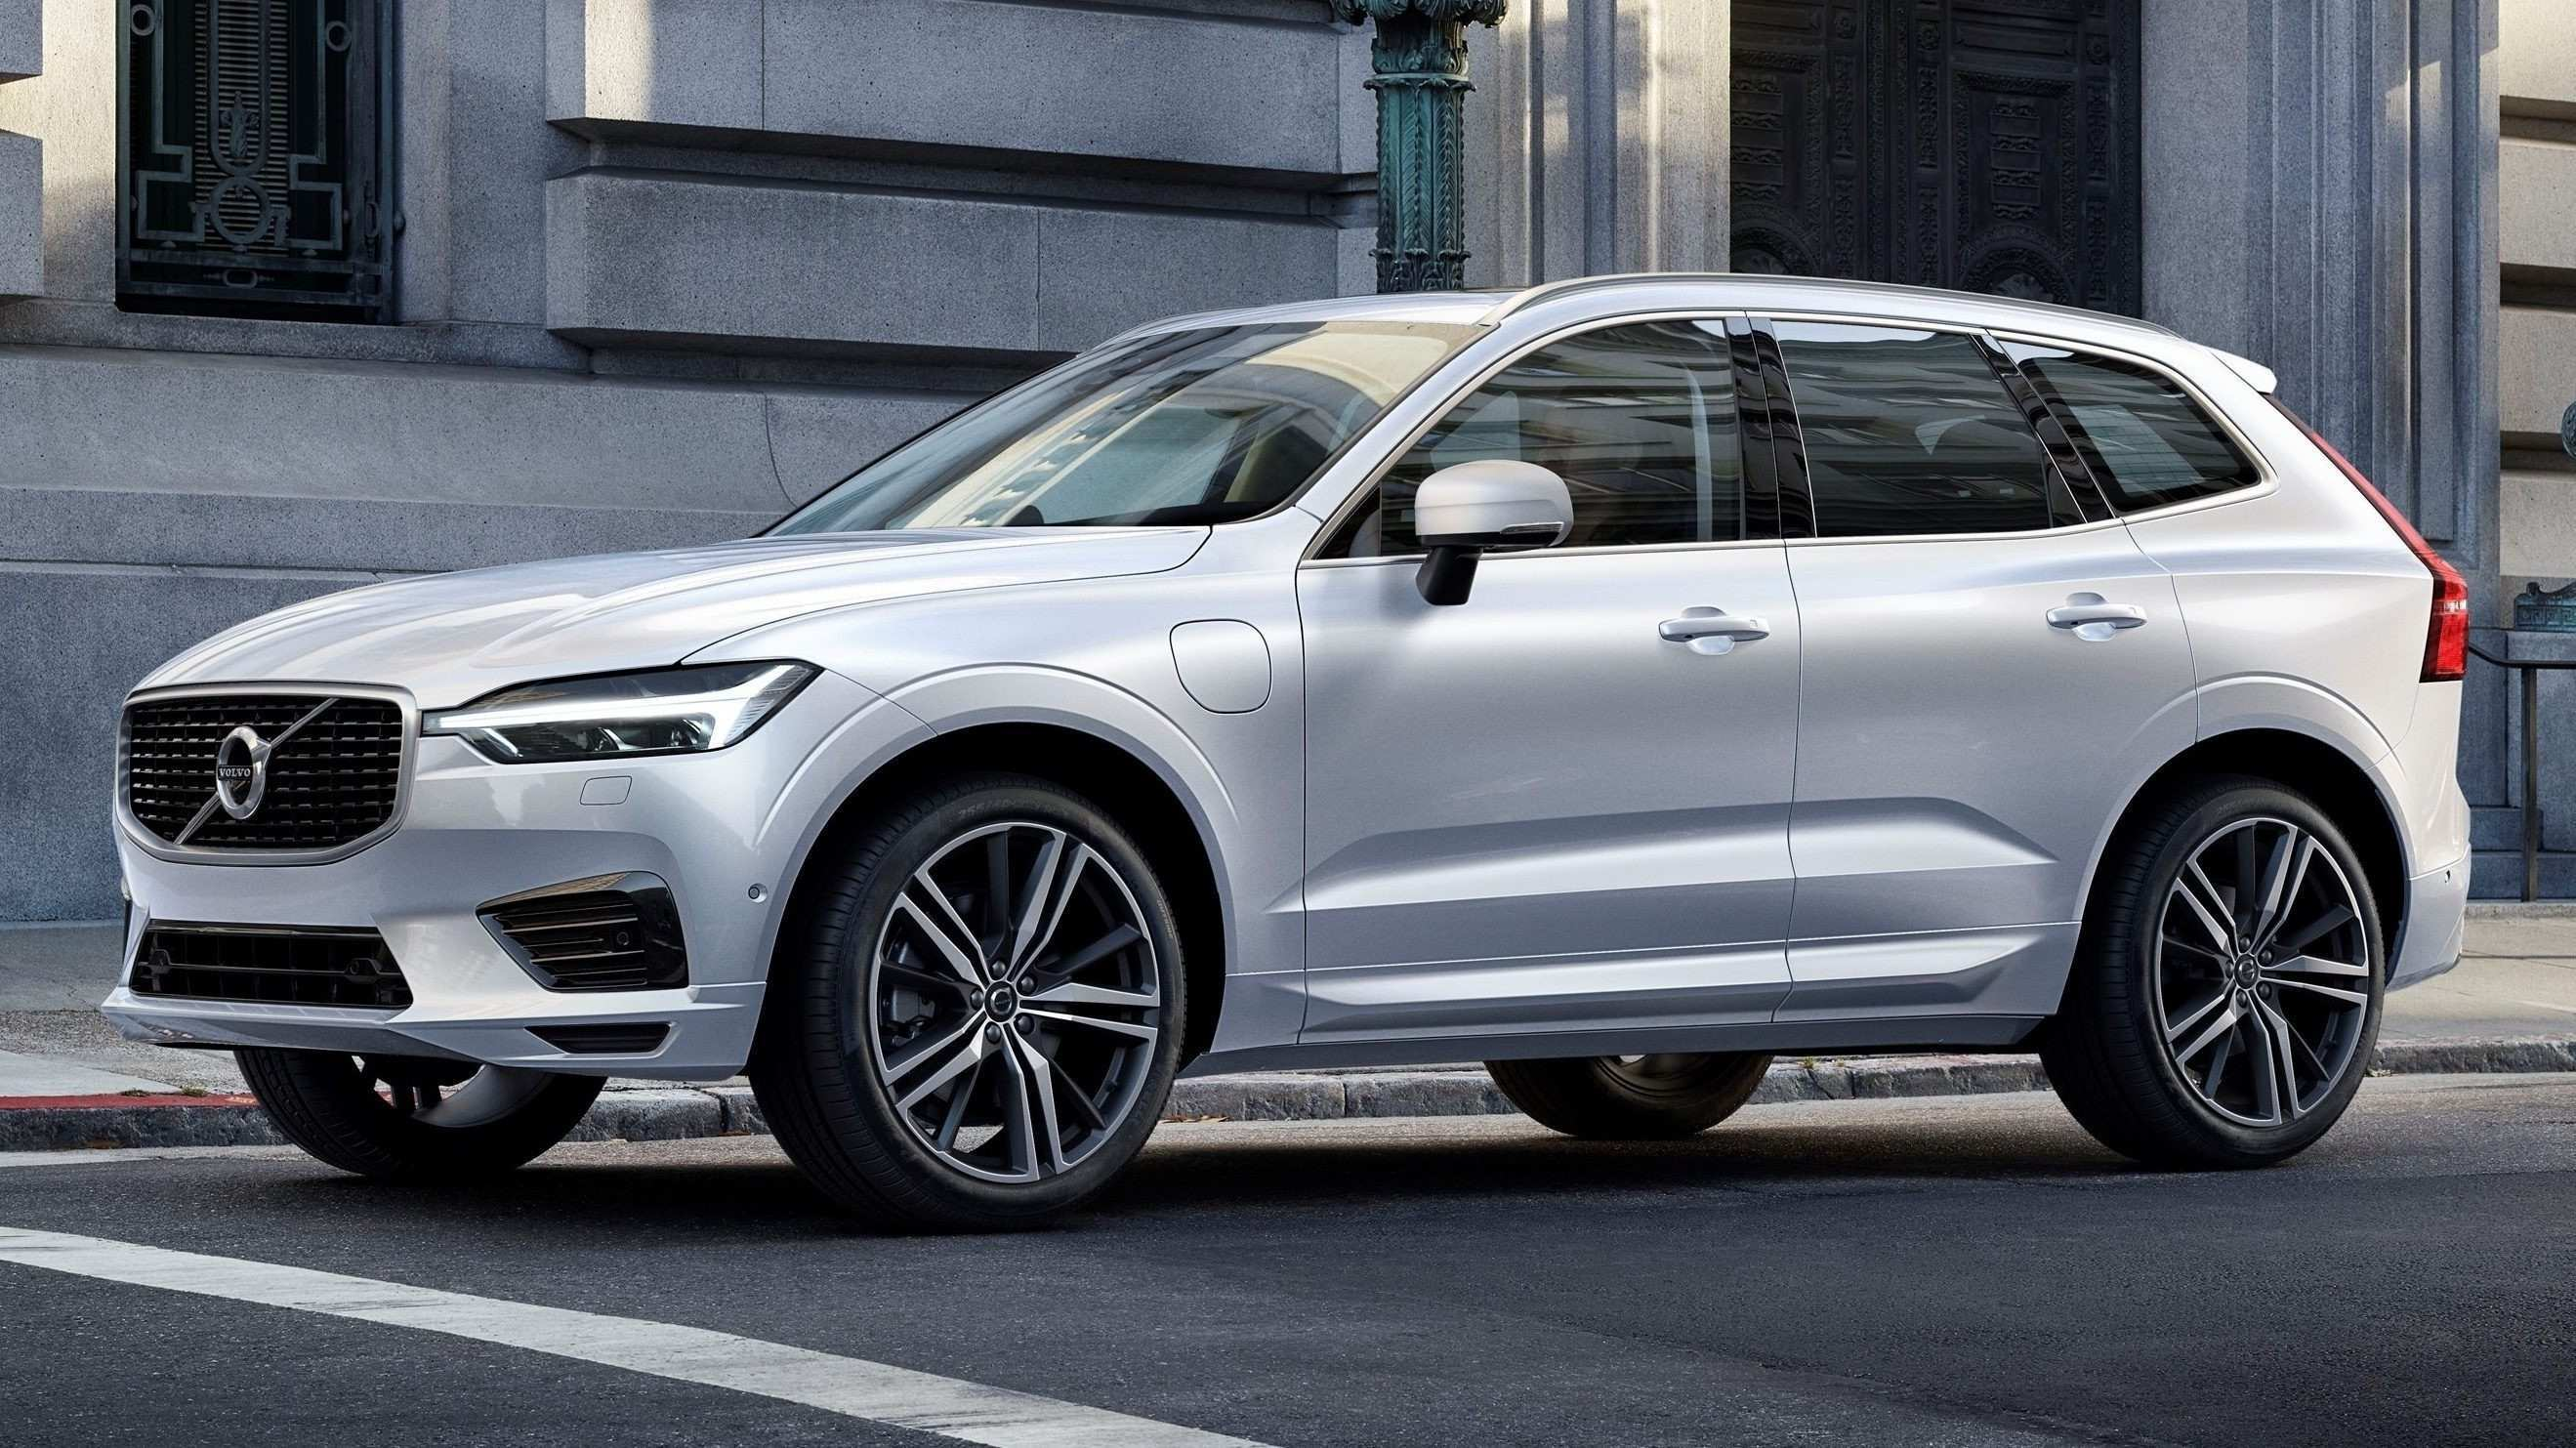 55 The Best Hybrid Volvo 2019 First Drive Spy Shoot by Best Hybrid Volvo 2019 First Drive